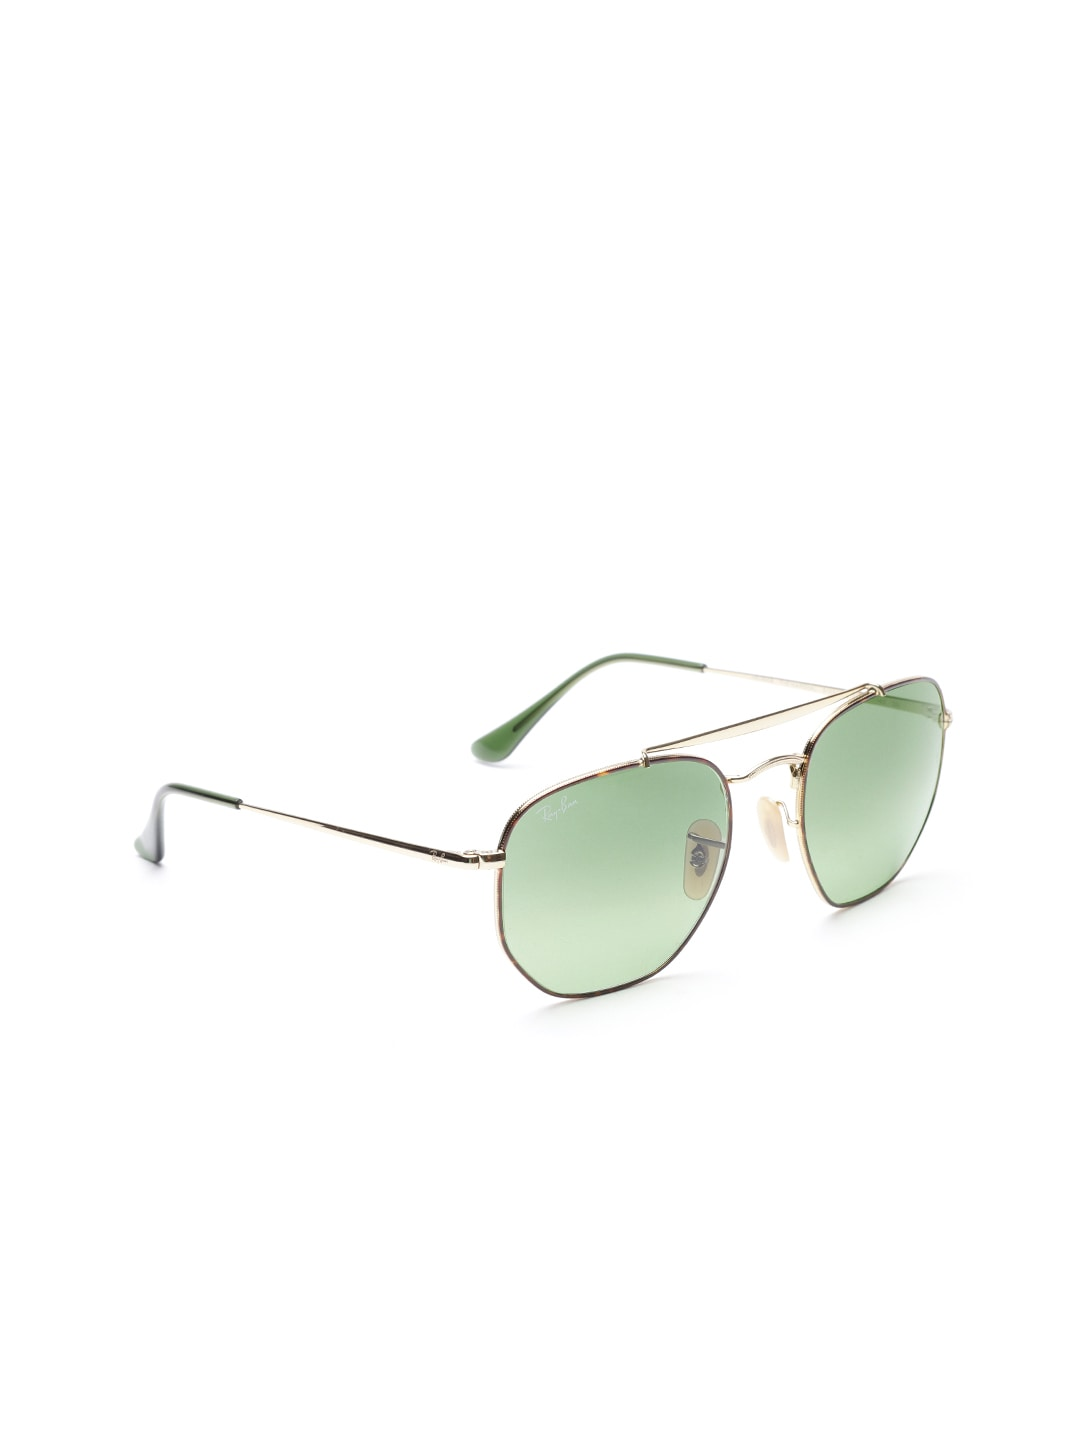 09426dfcab Ray Ban - Buy Ray Ban Sunglasses   Frames Online In India